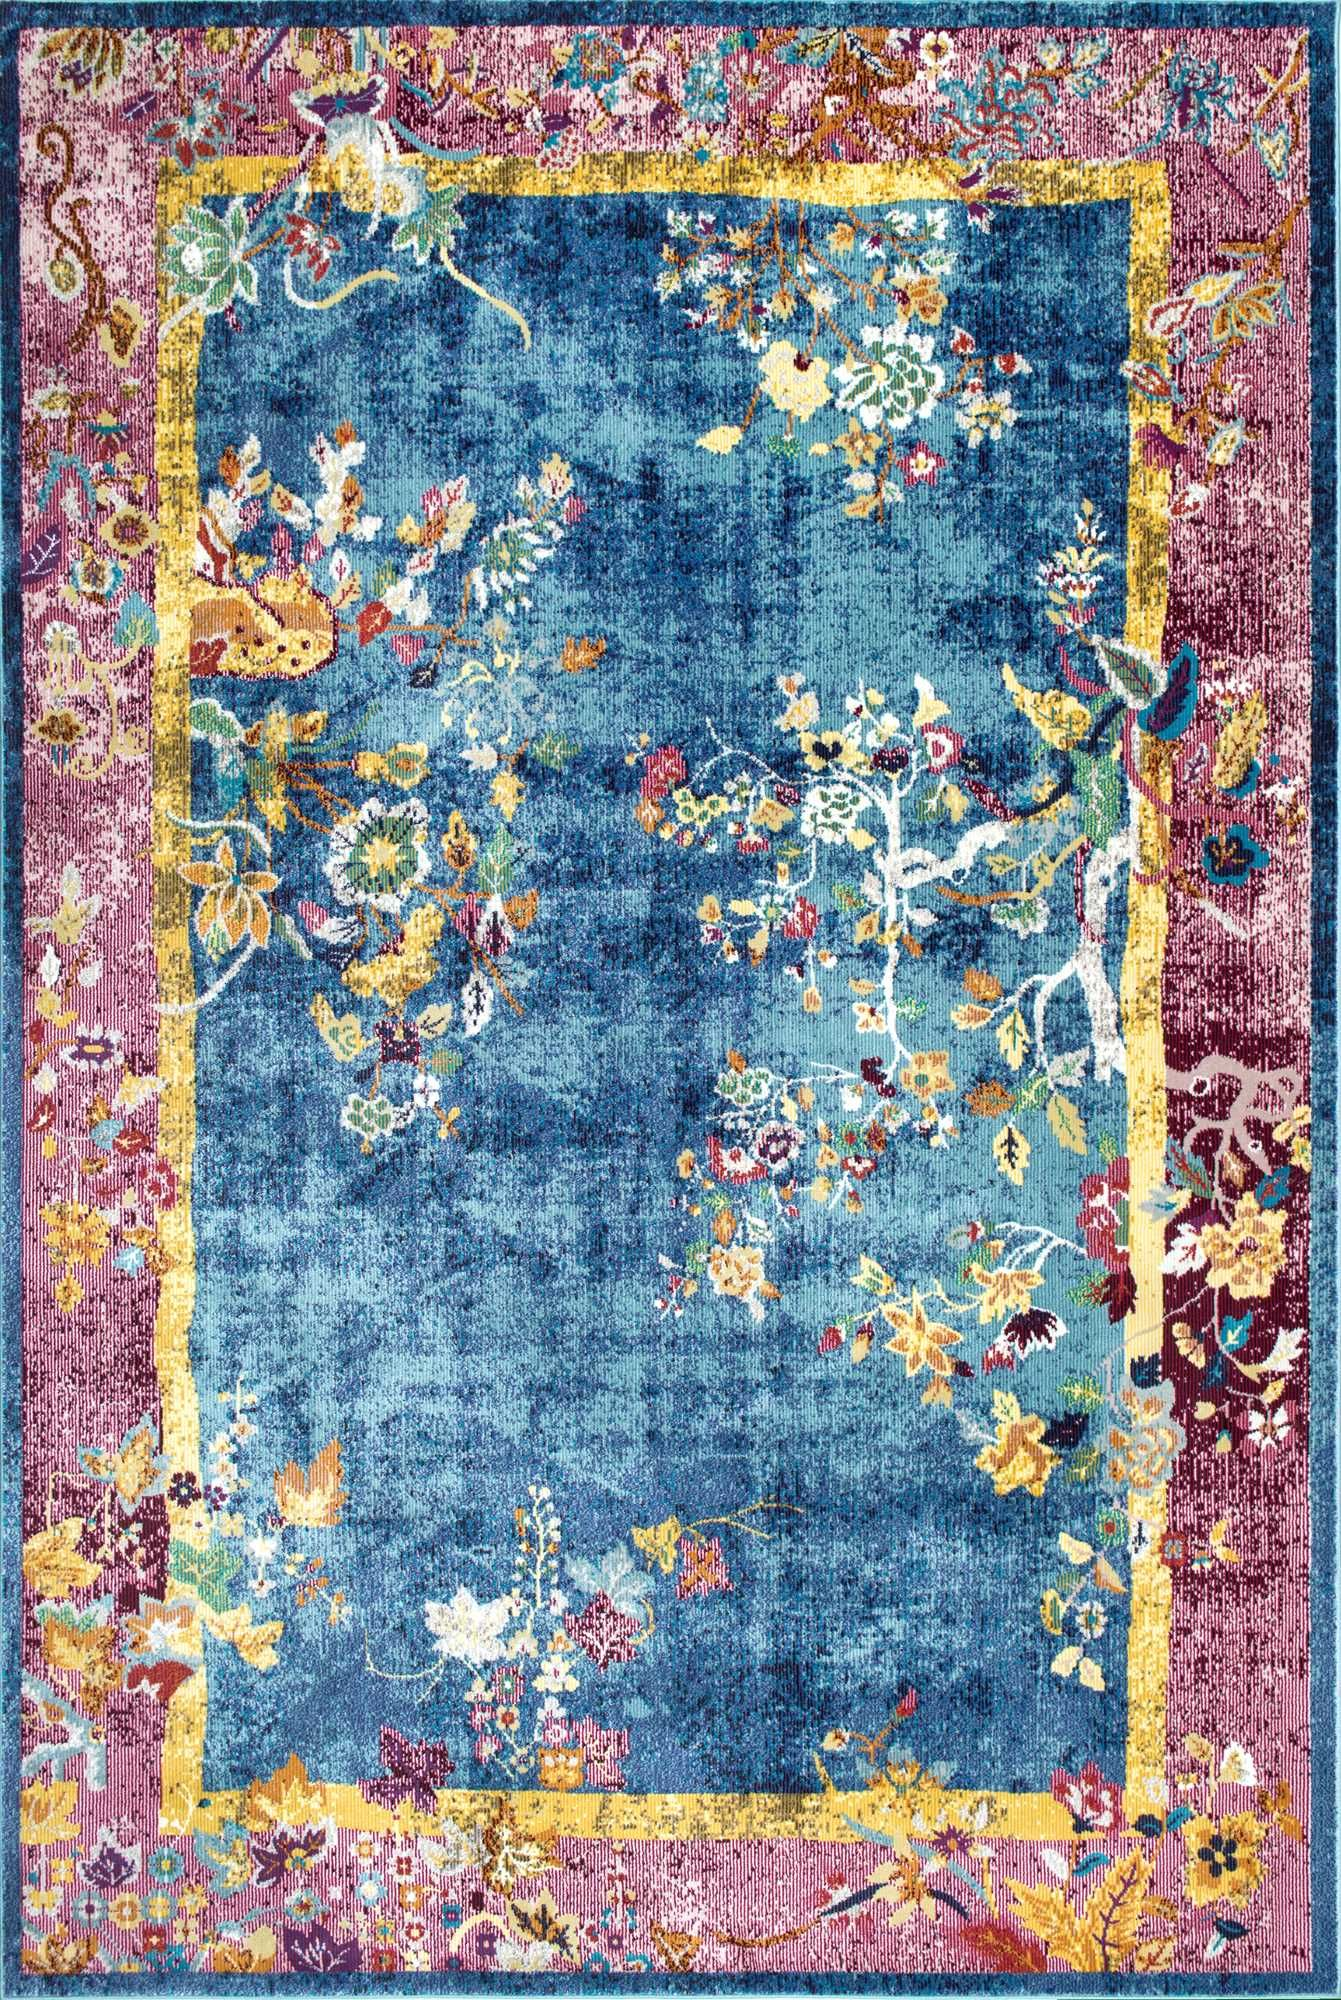 Louvaire Chinese Art Deco Blossoms Blue Rug Art Deco Rugs Area Rugs Blue Rug